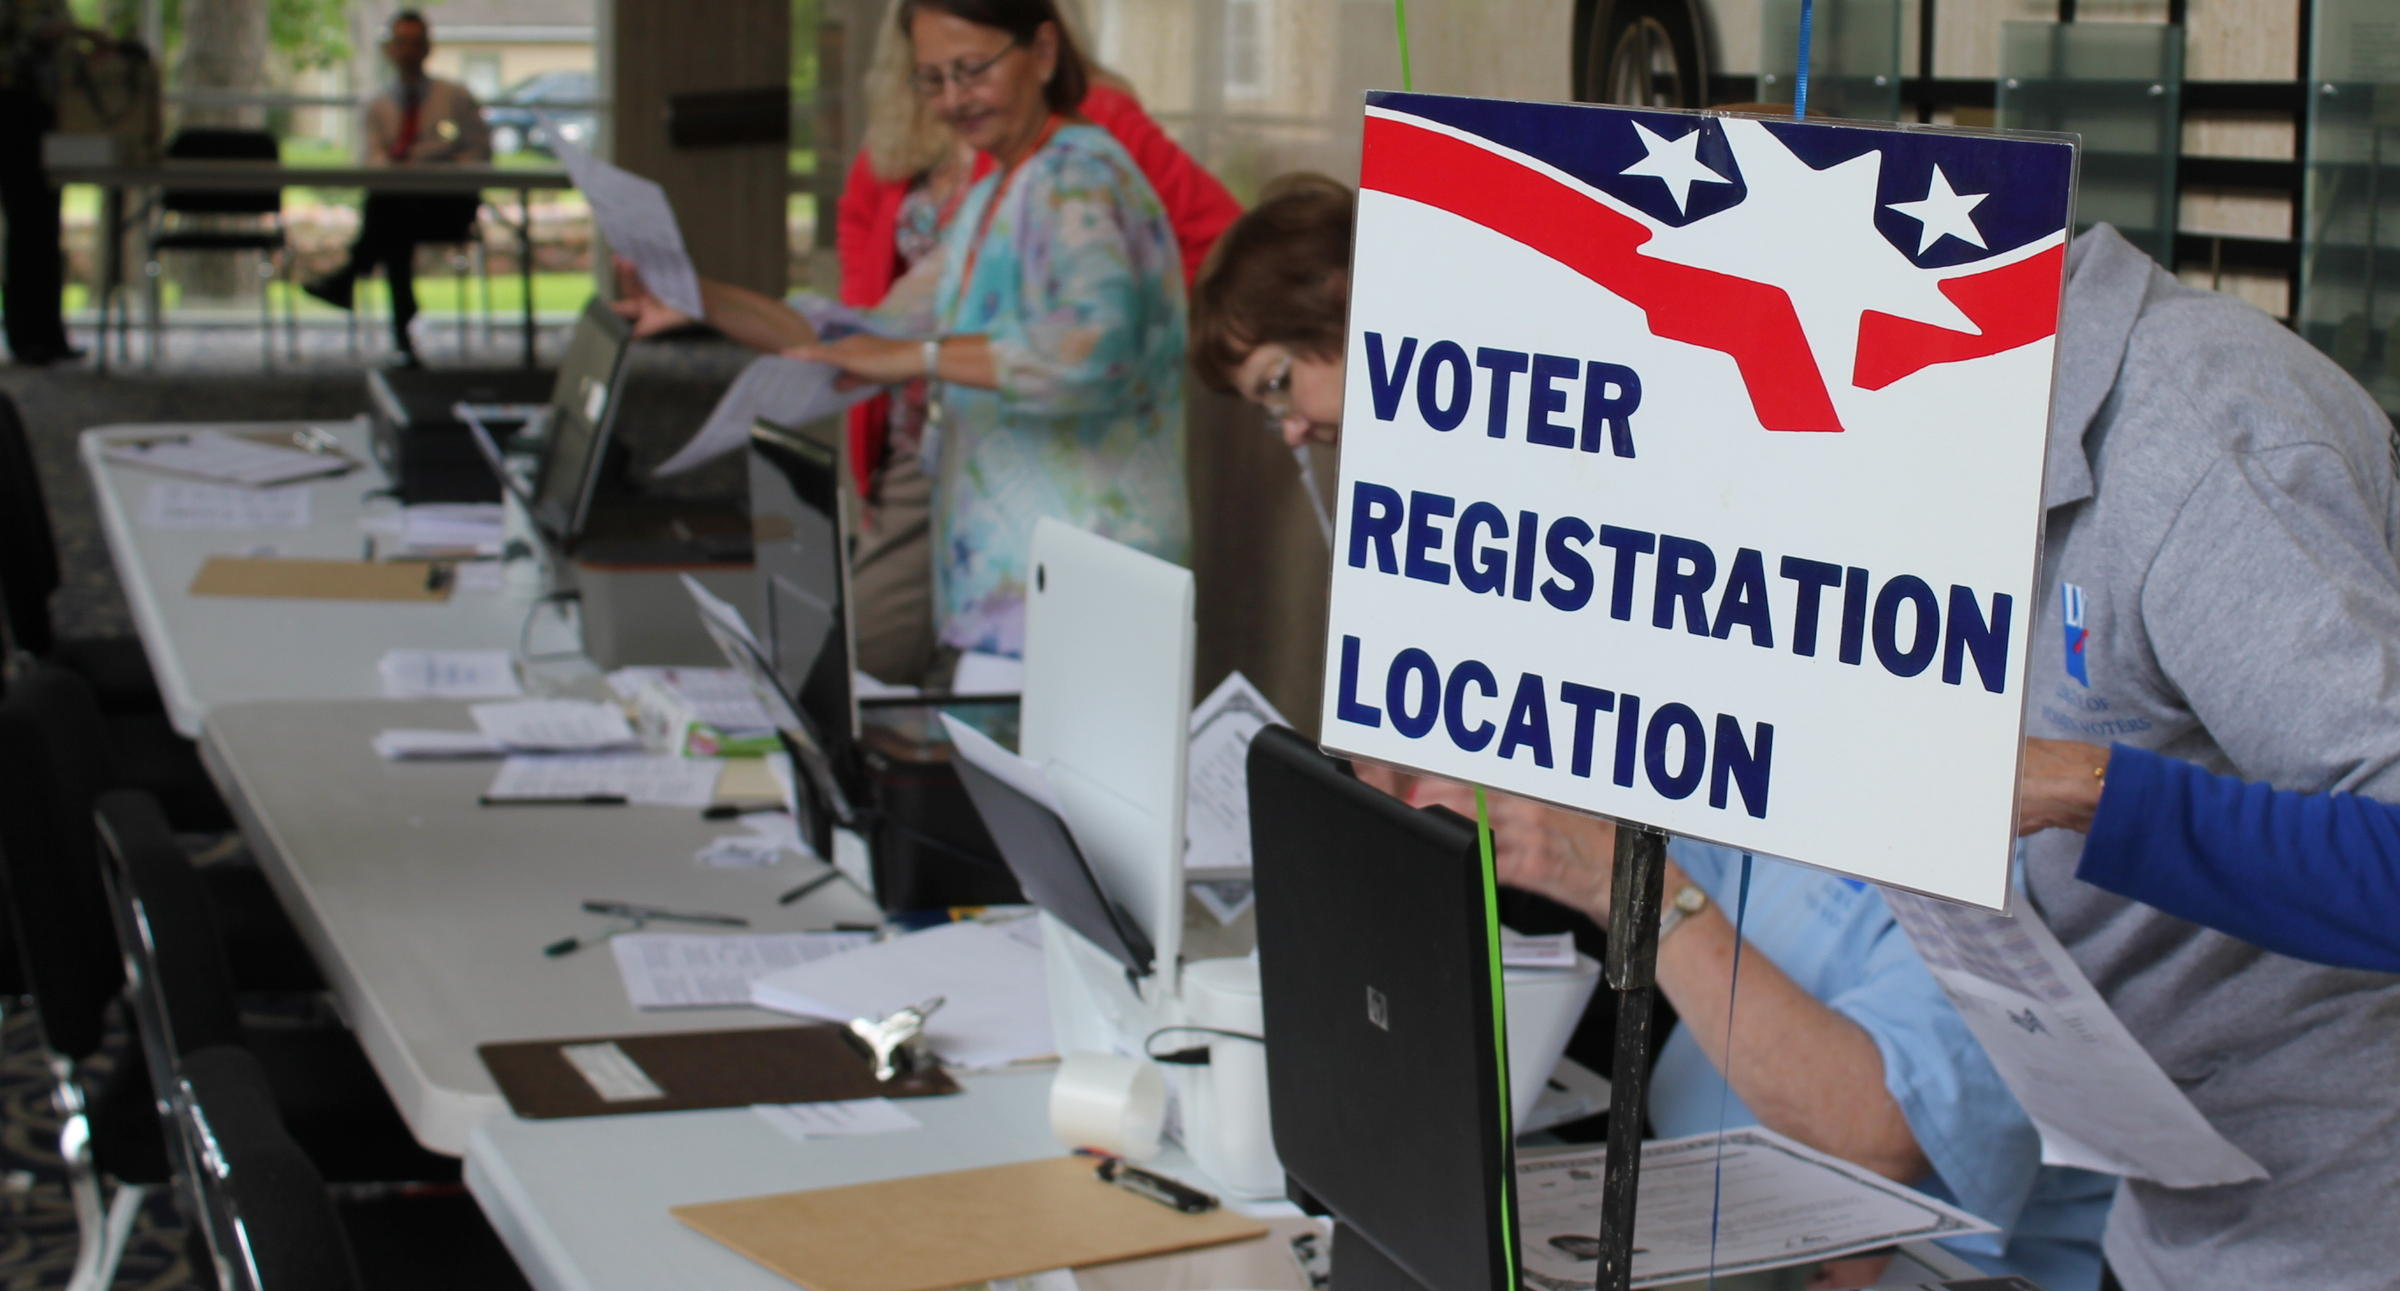 Thousands of kansans in limbo over proof of citizenship volunteers from the league of women voters register voters after a naturalization ceremony in topeka aiddatafo Choice Image